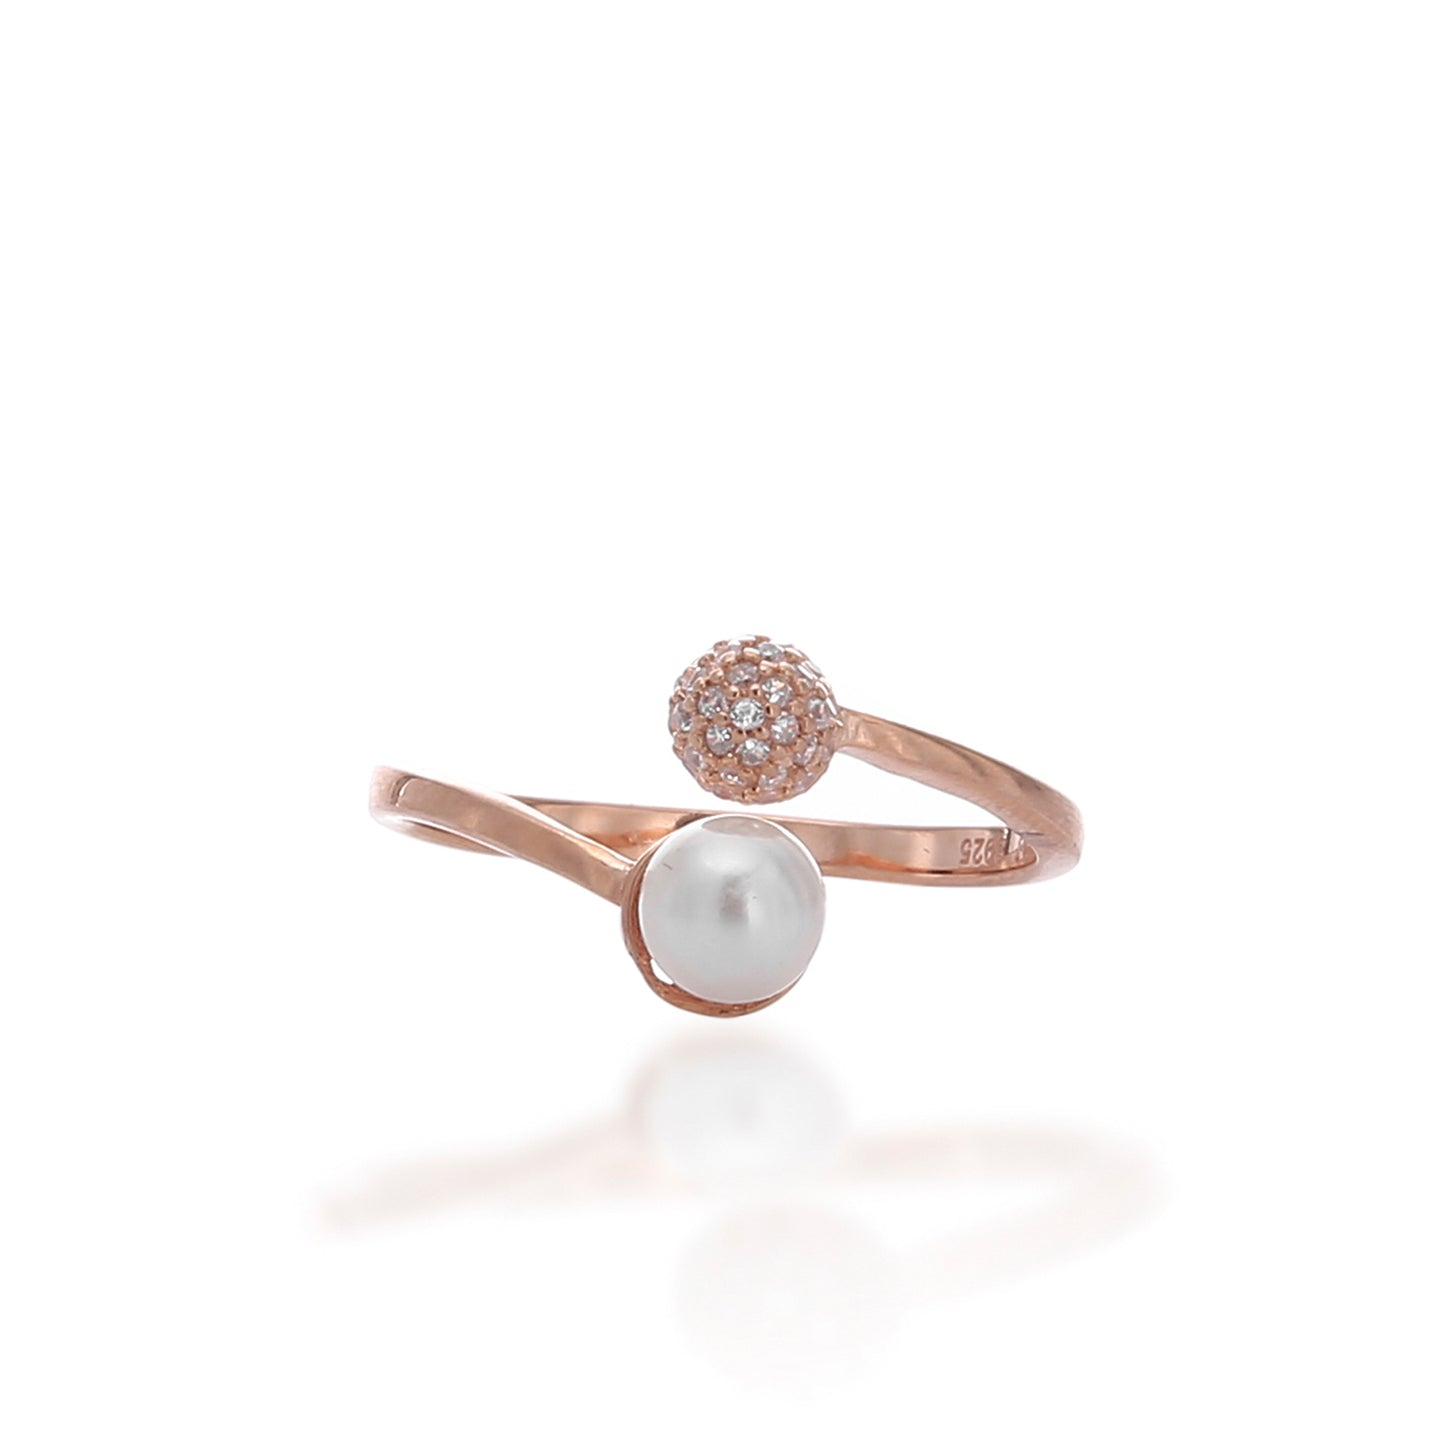 Luminous Glow White Crystal and Pearl Adjustable Ring - ARJWR1039RG - ARCADIO LIFESTYLE